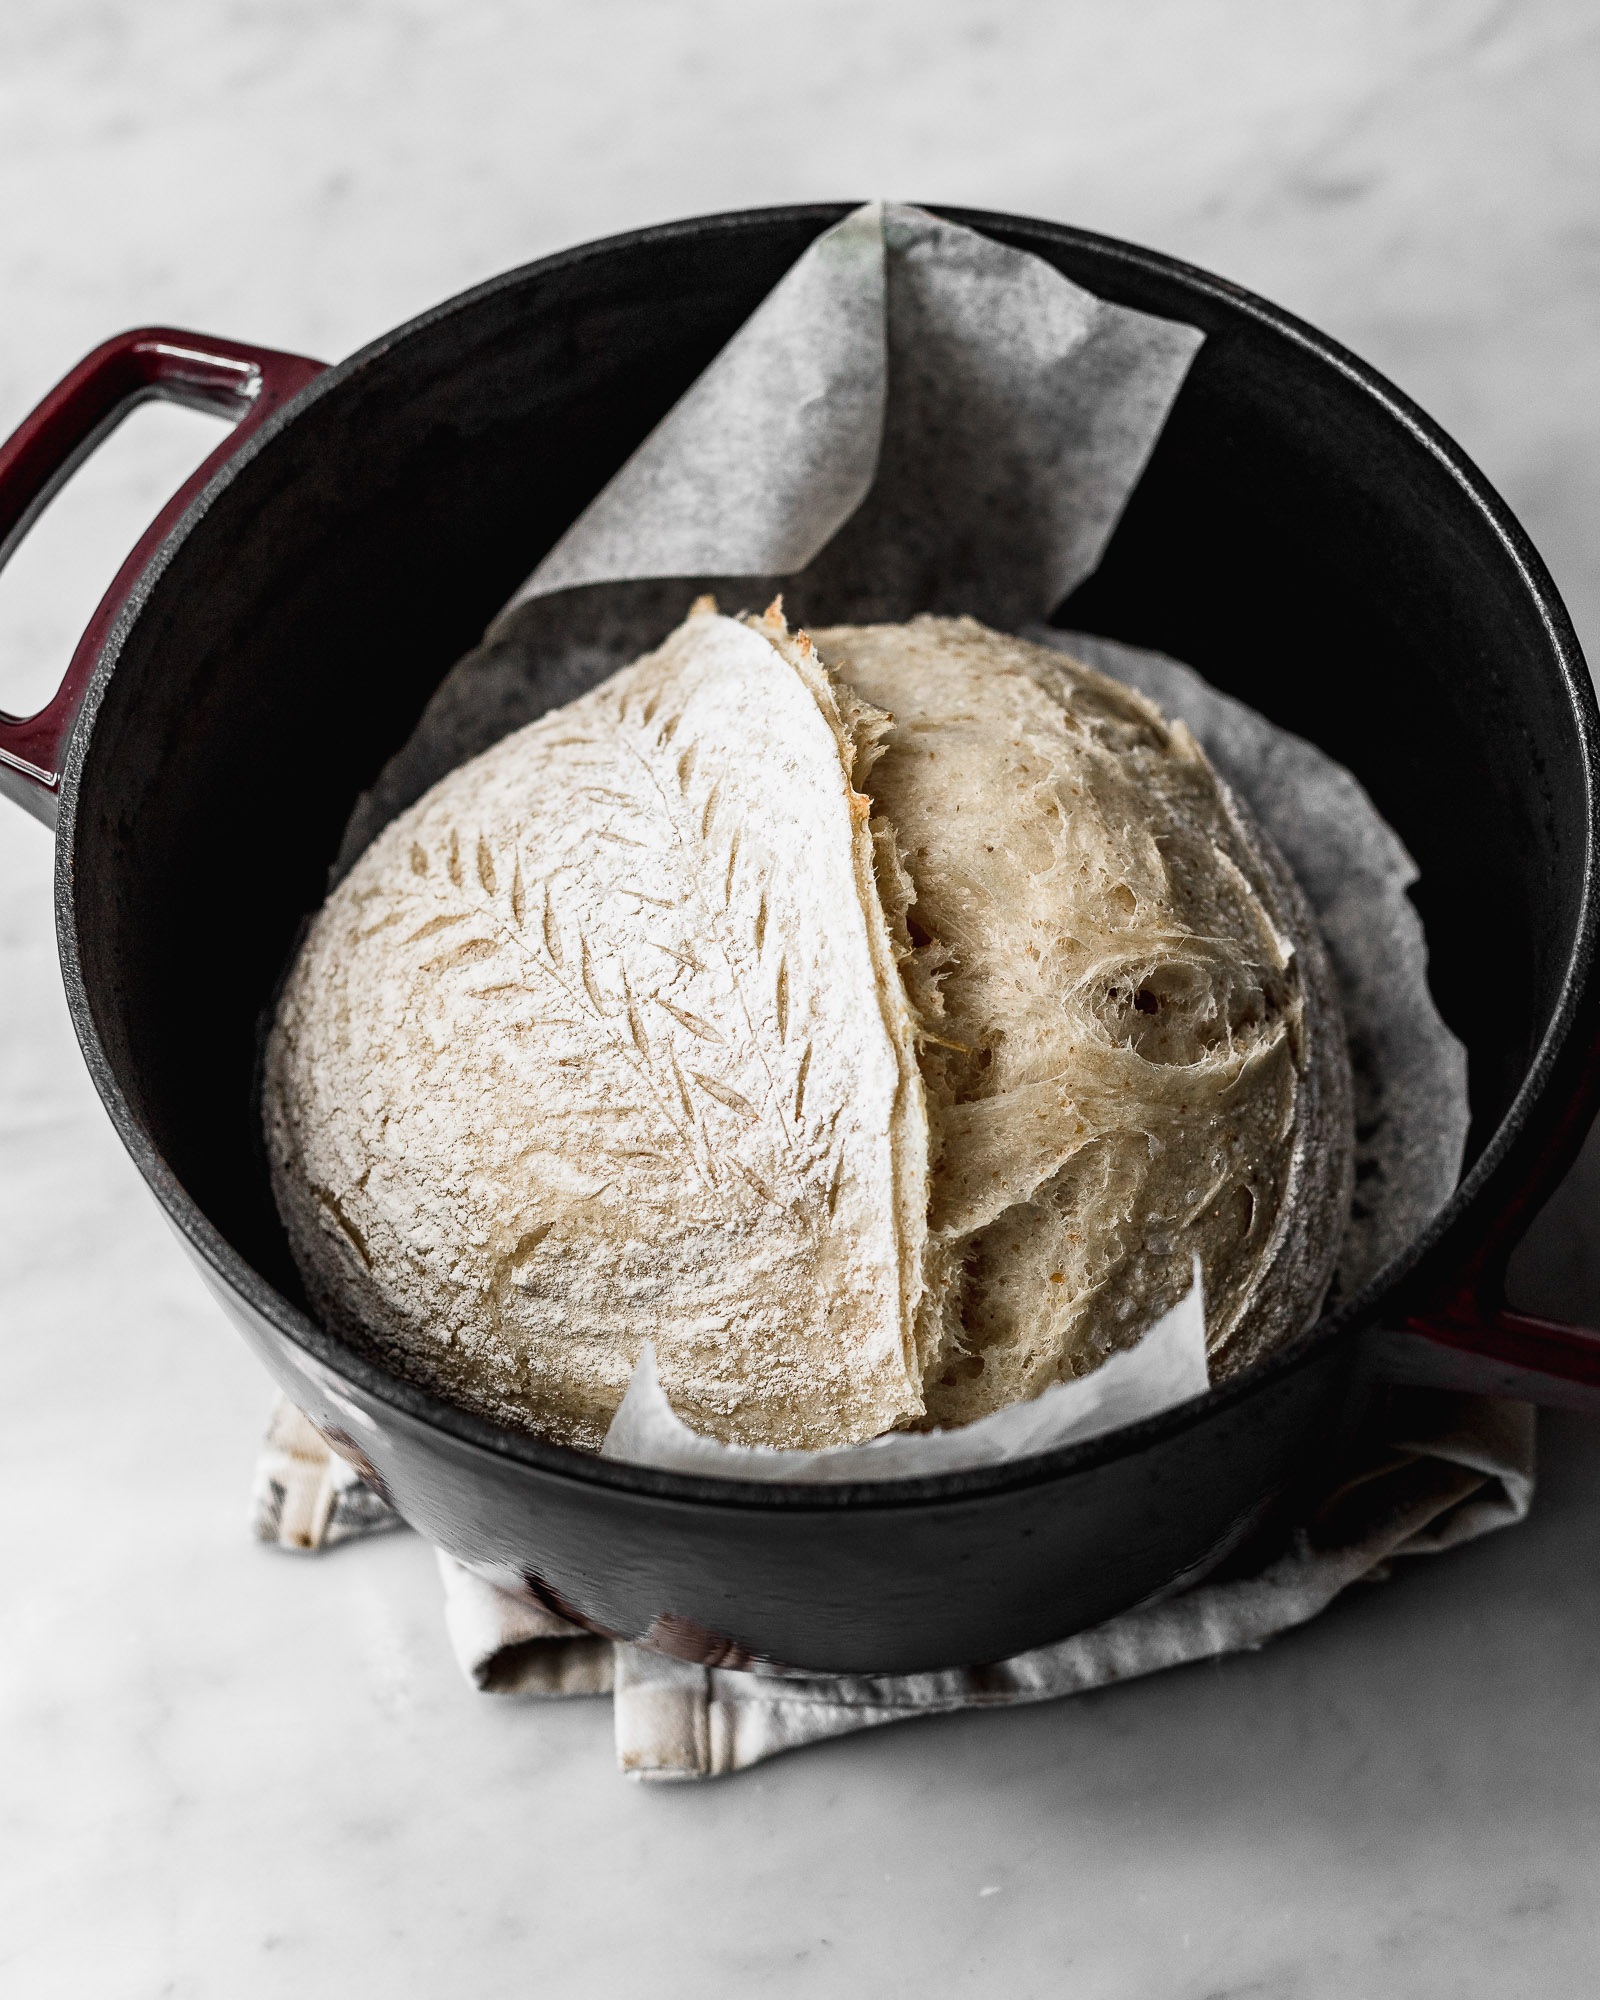 How To Bake Sourdough Bread In A Dutch Oven Cravings Journal